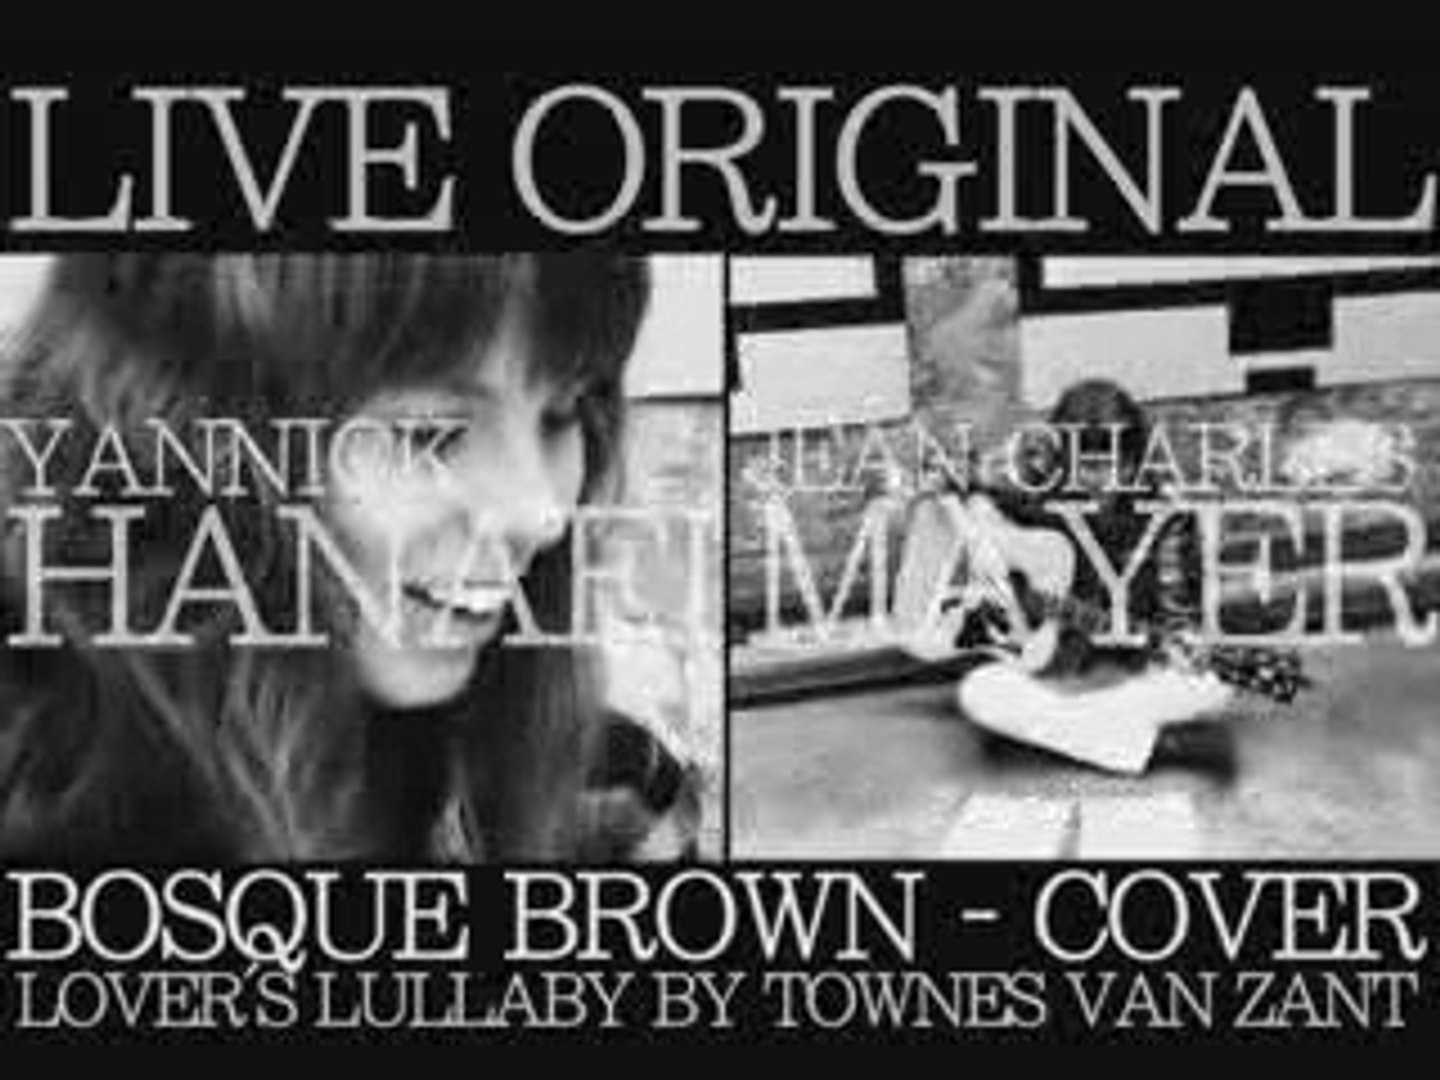 LIVE ORIGINAL : BOSQUE BROWN - LOVER'S LULLABY